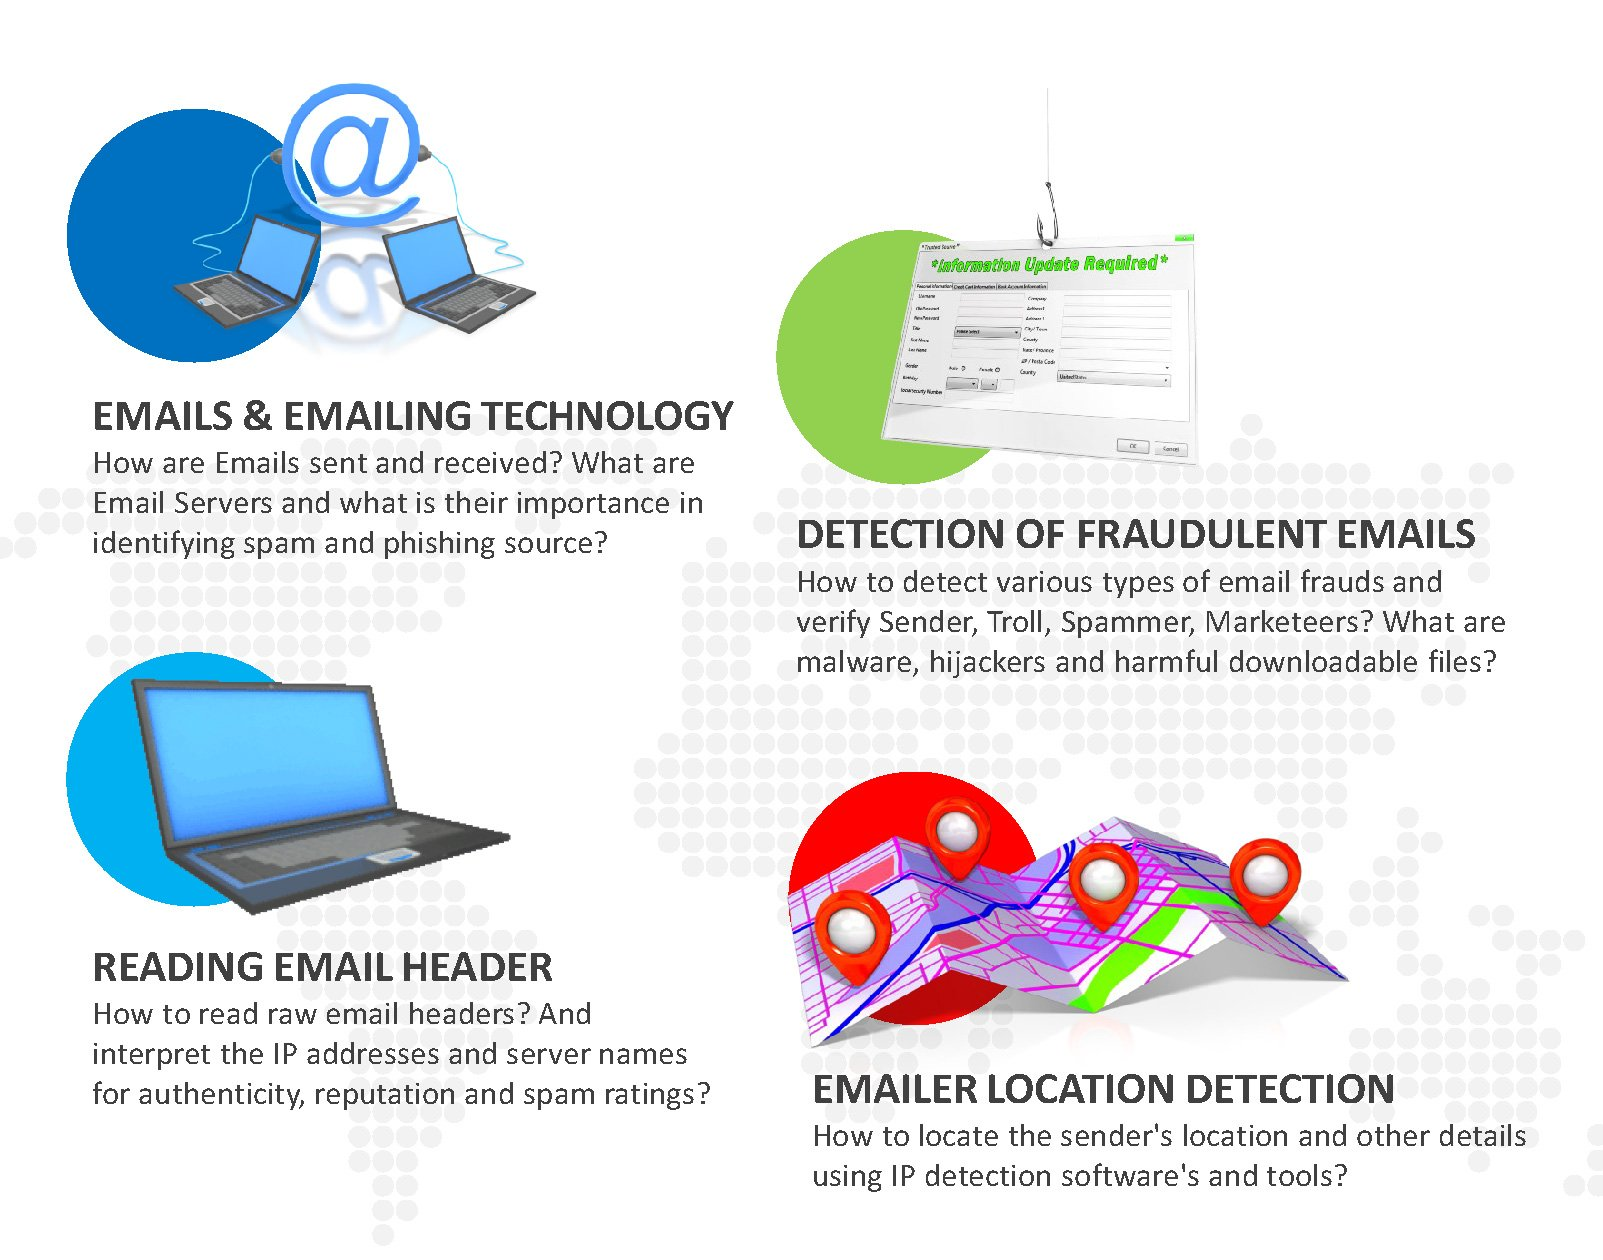 Networks & Search Engine Technology